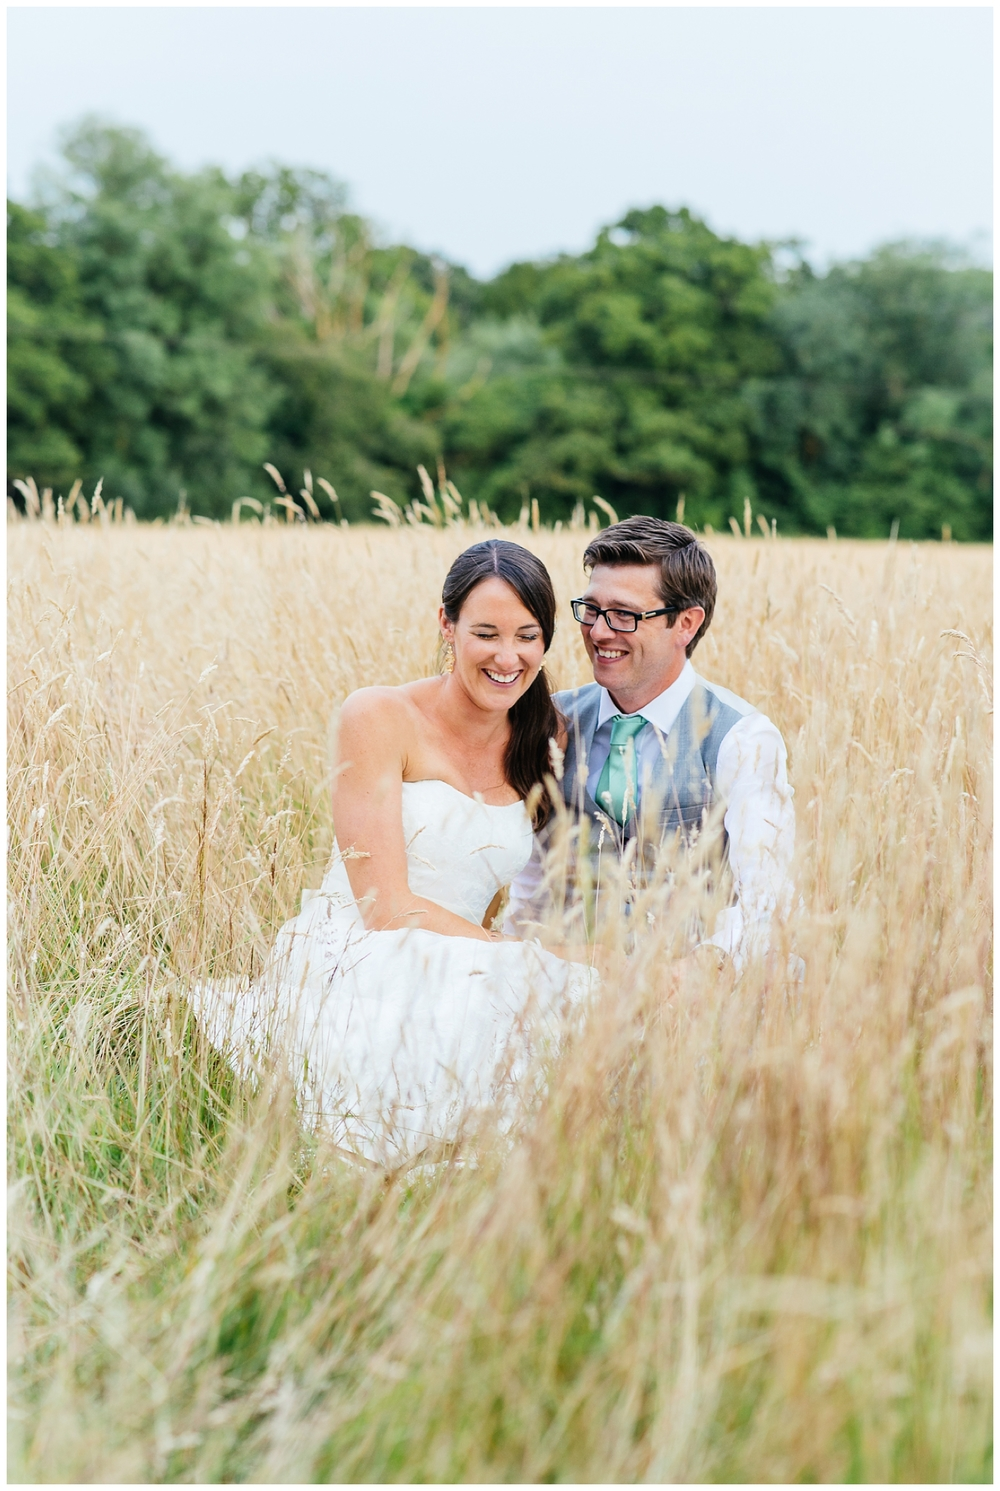 Nikki_Cooper_Photography_Lucy&Scott_Wedding_Photos_The_Crab_Tree_Pub_Horsham_1133.jpg